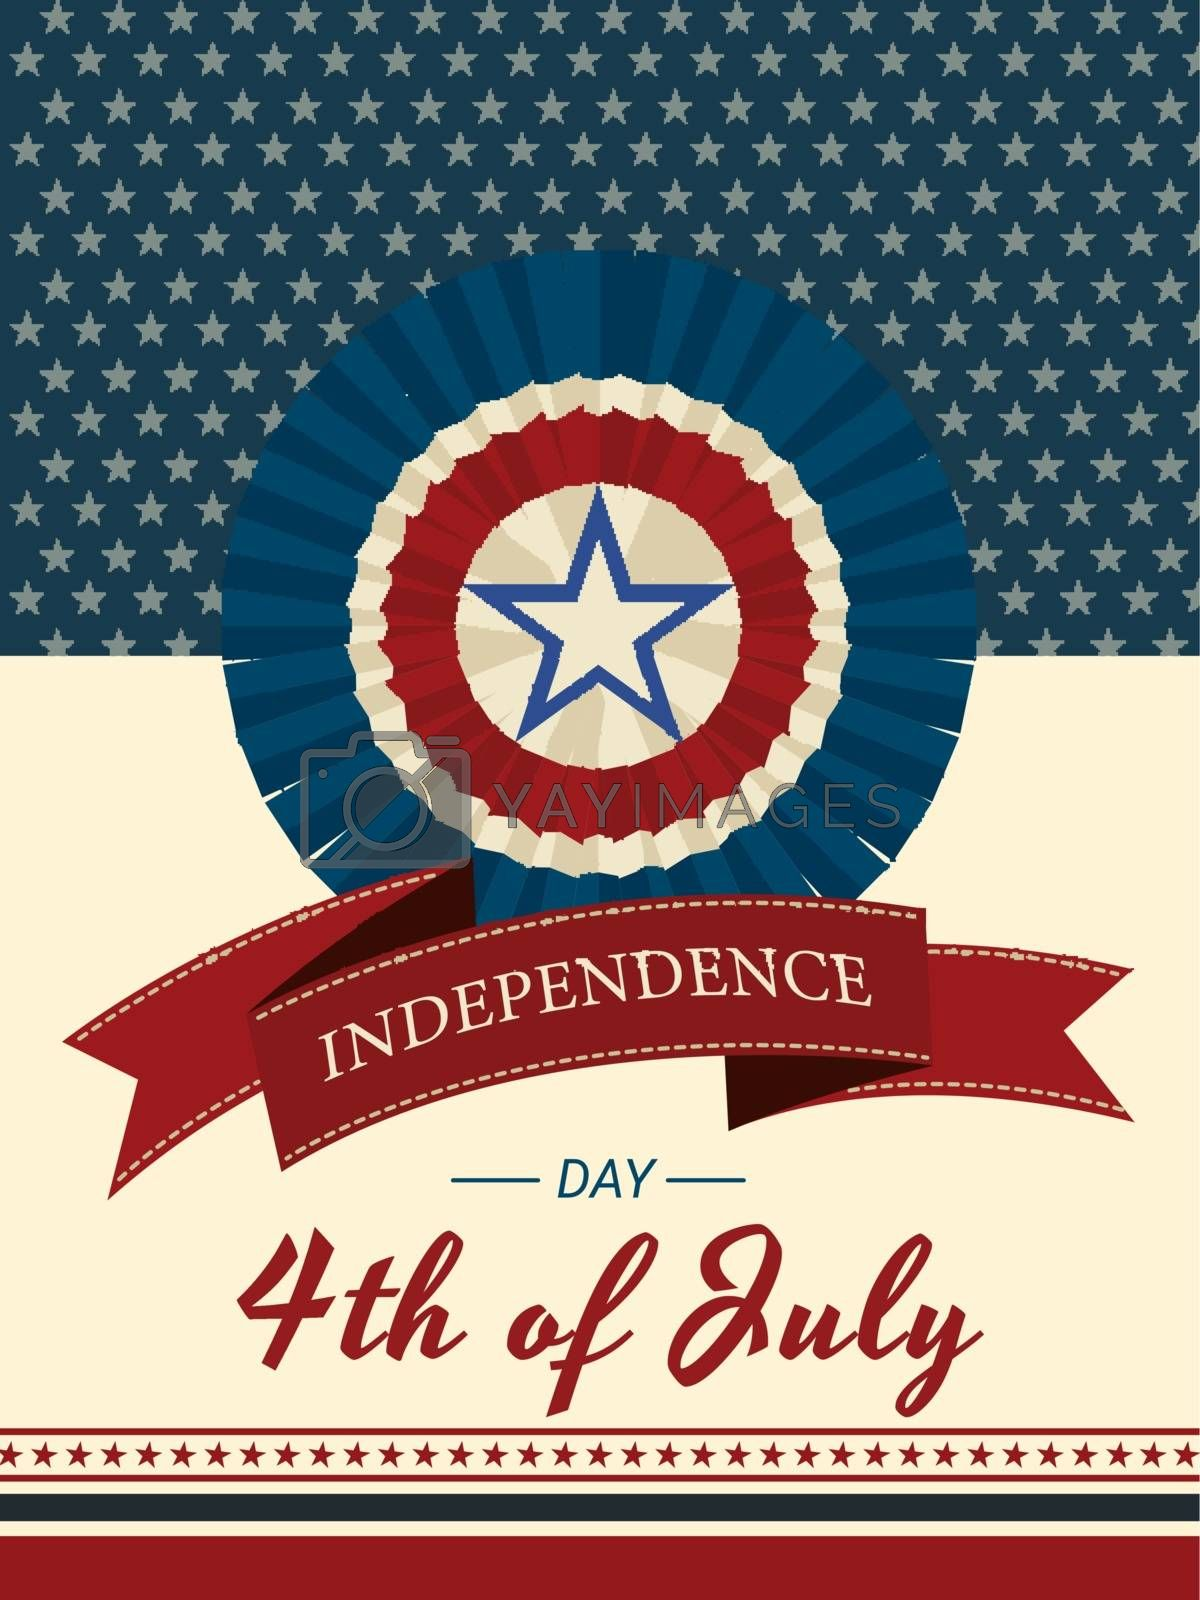 Royalty free image of 4th of July Independence Day invitation card or template design  by aispl